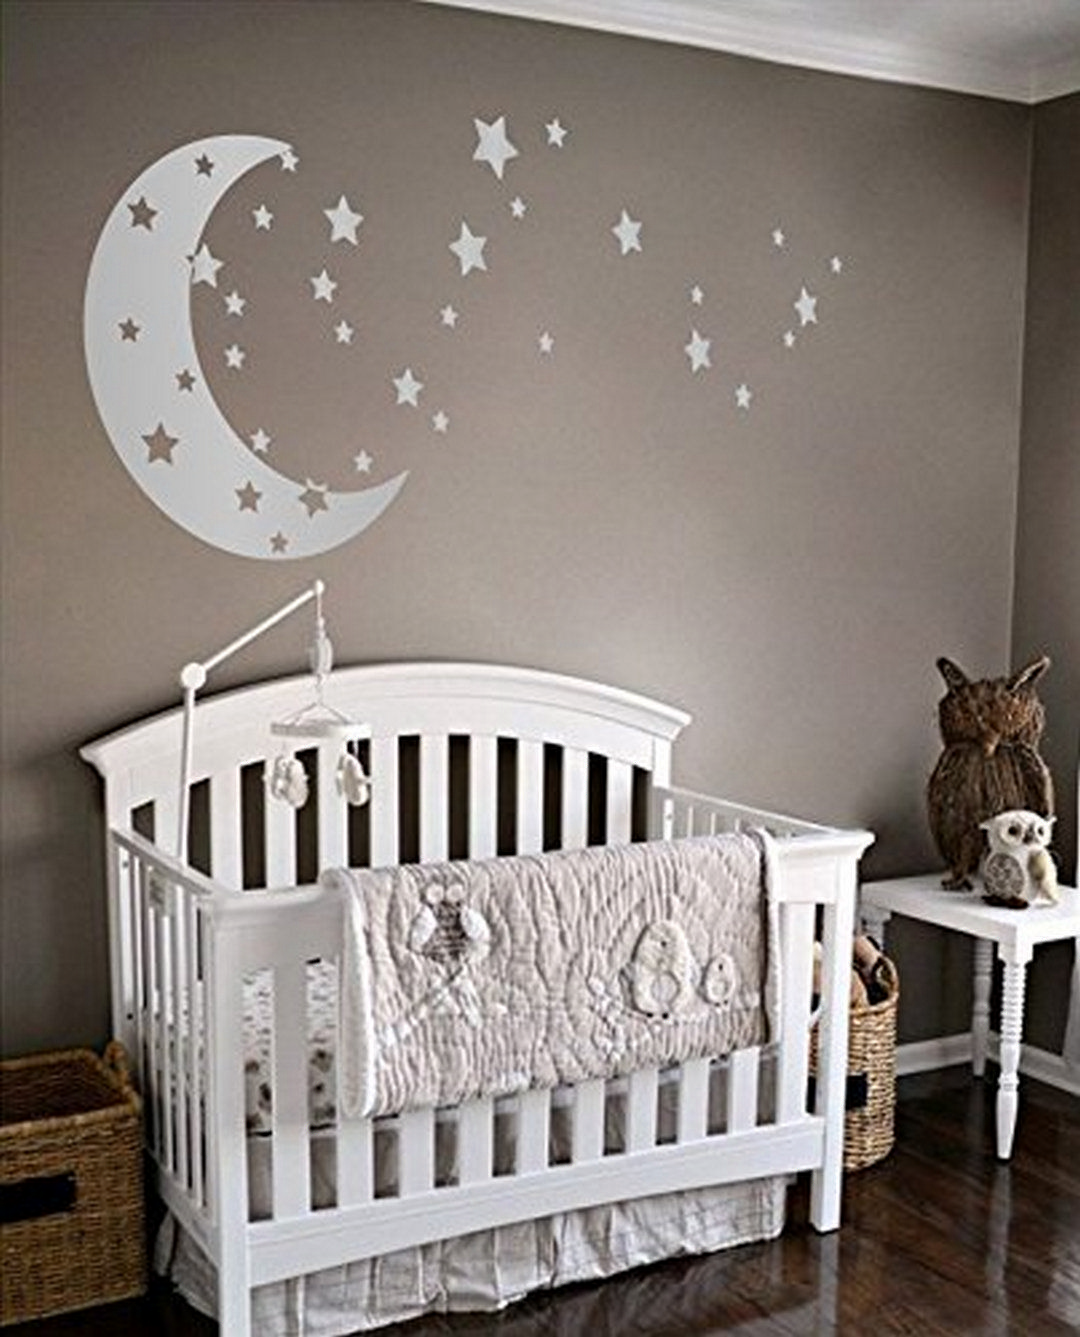 Baby Room Decoration Ideas 38 Dazzling Moon and Stars Nursery Decoration Ideas